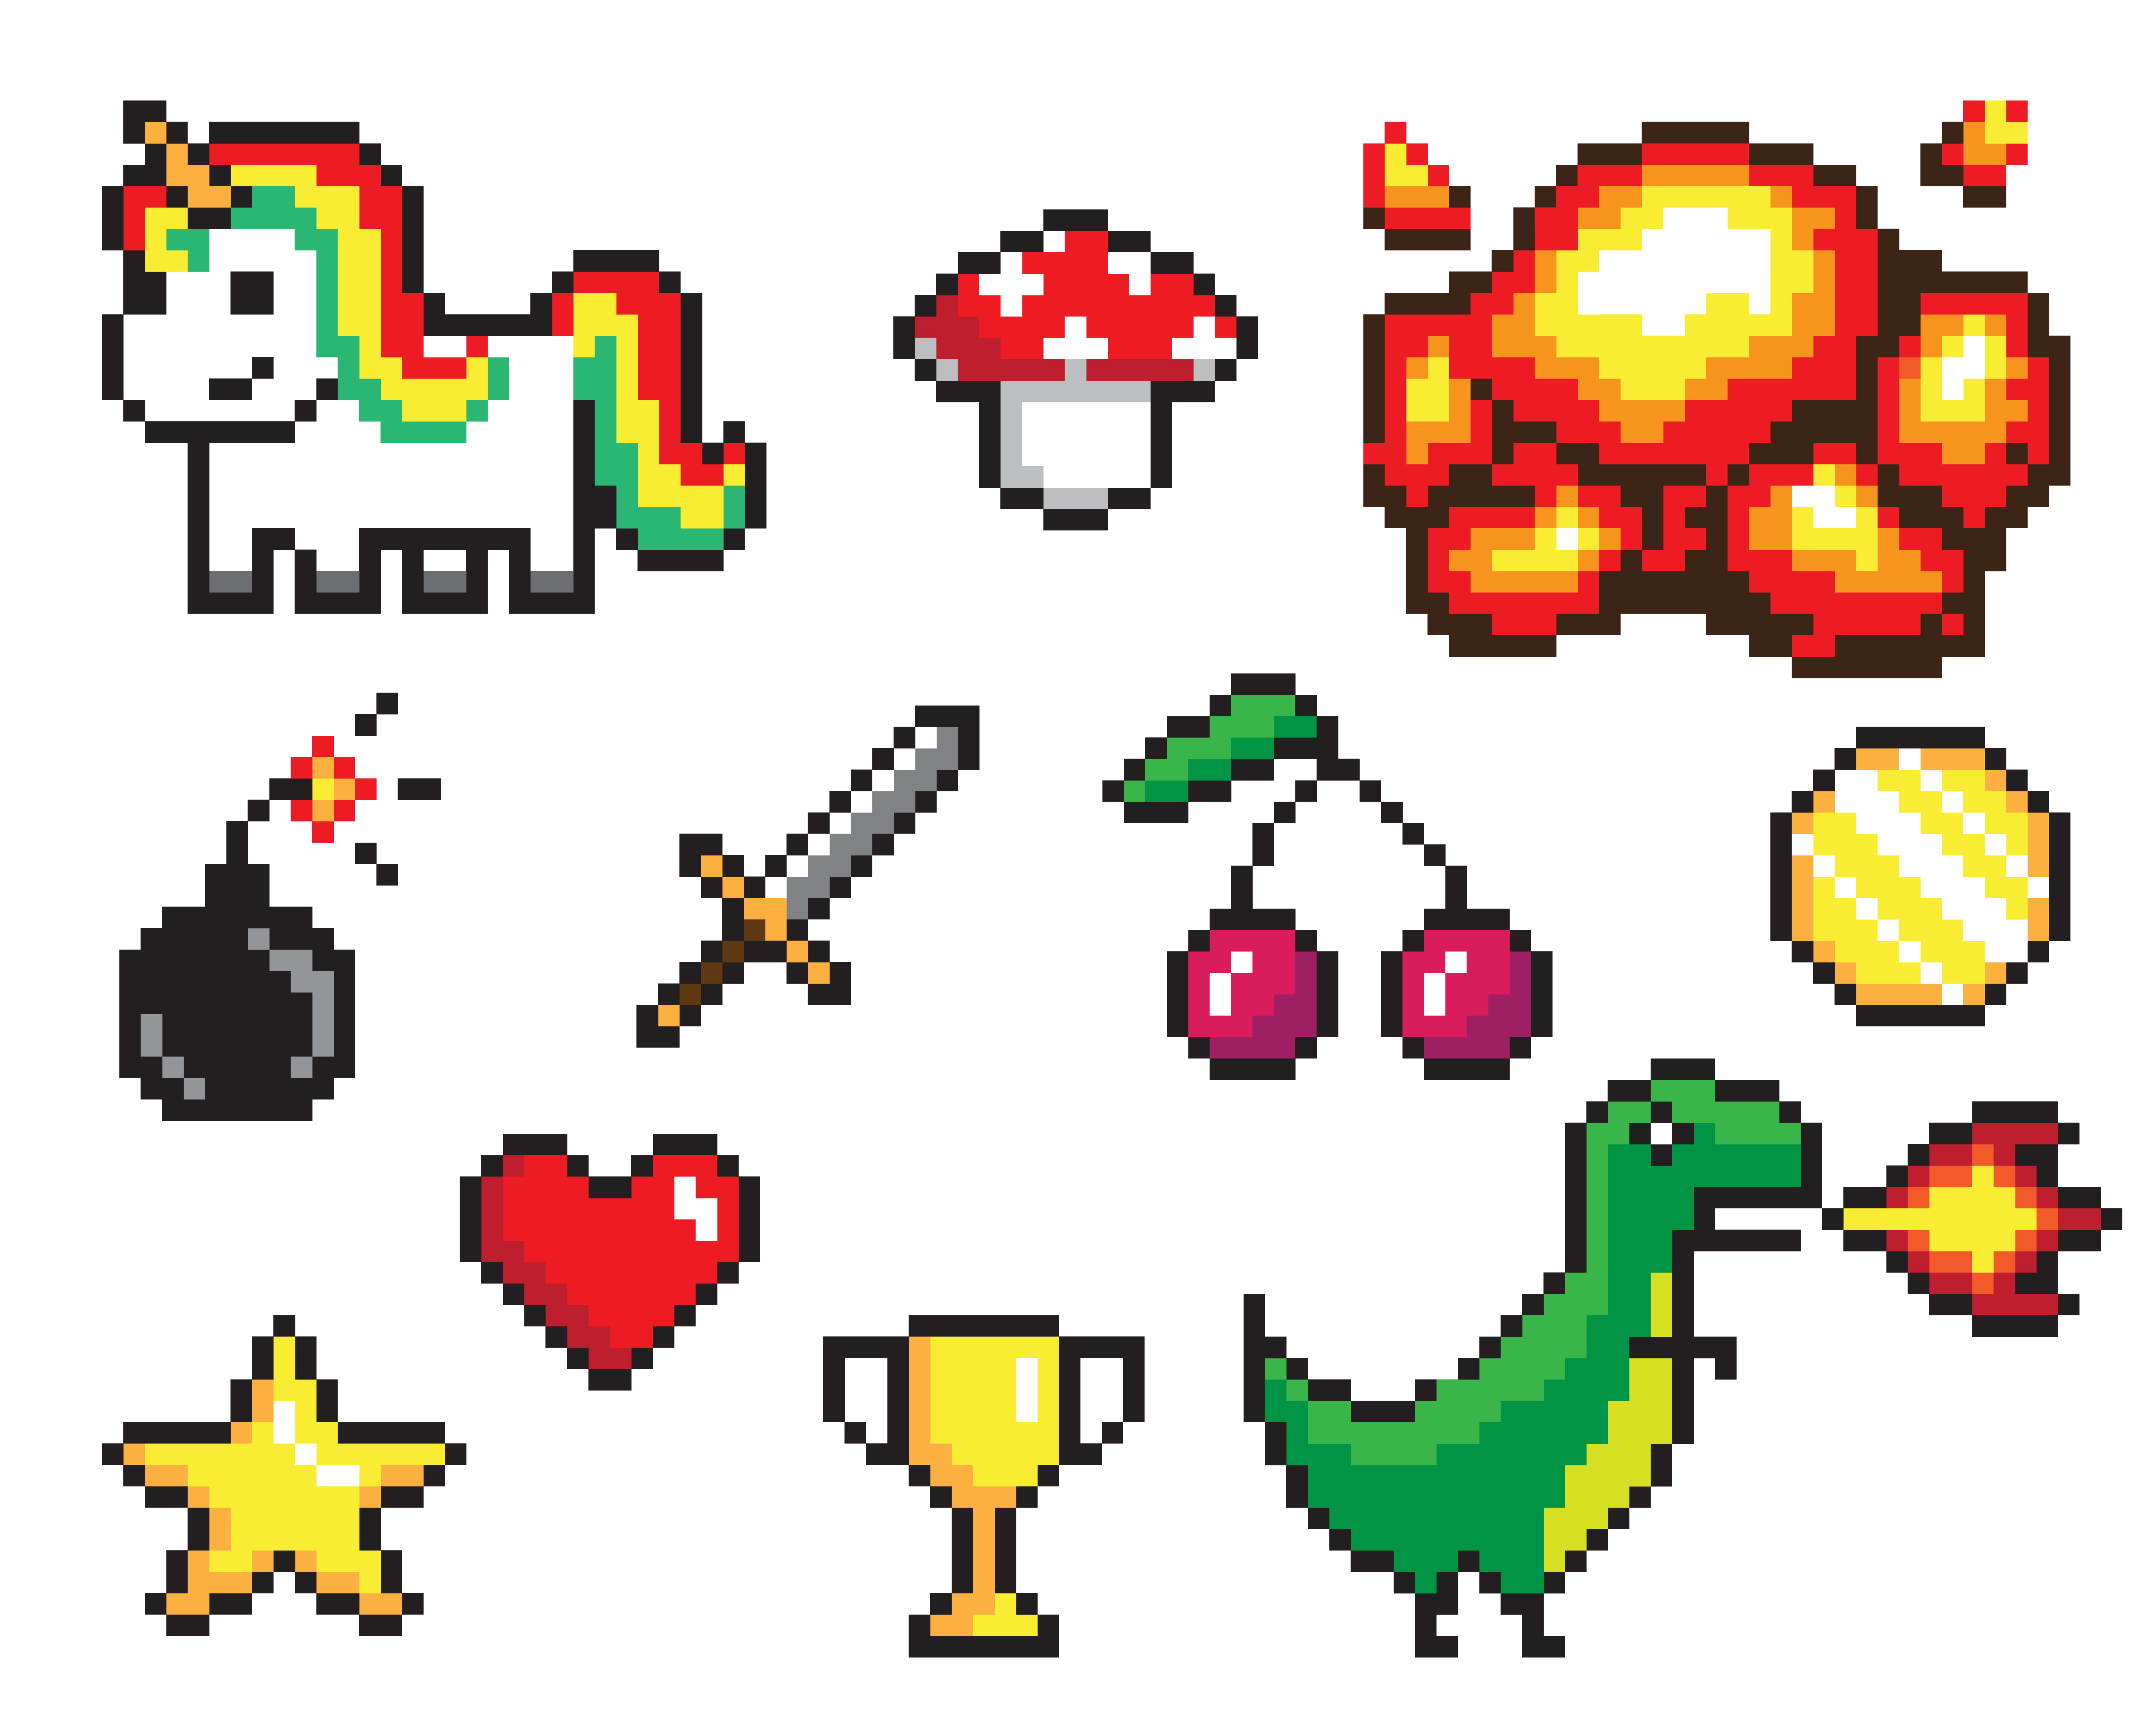 Here are some examples of objects you're bound to find in a pixel art coloring app